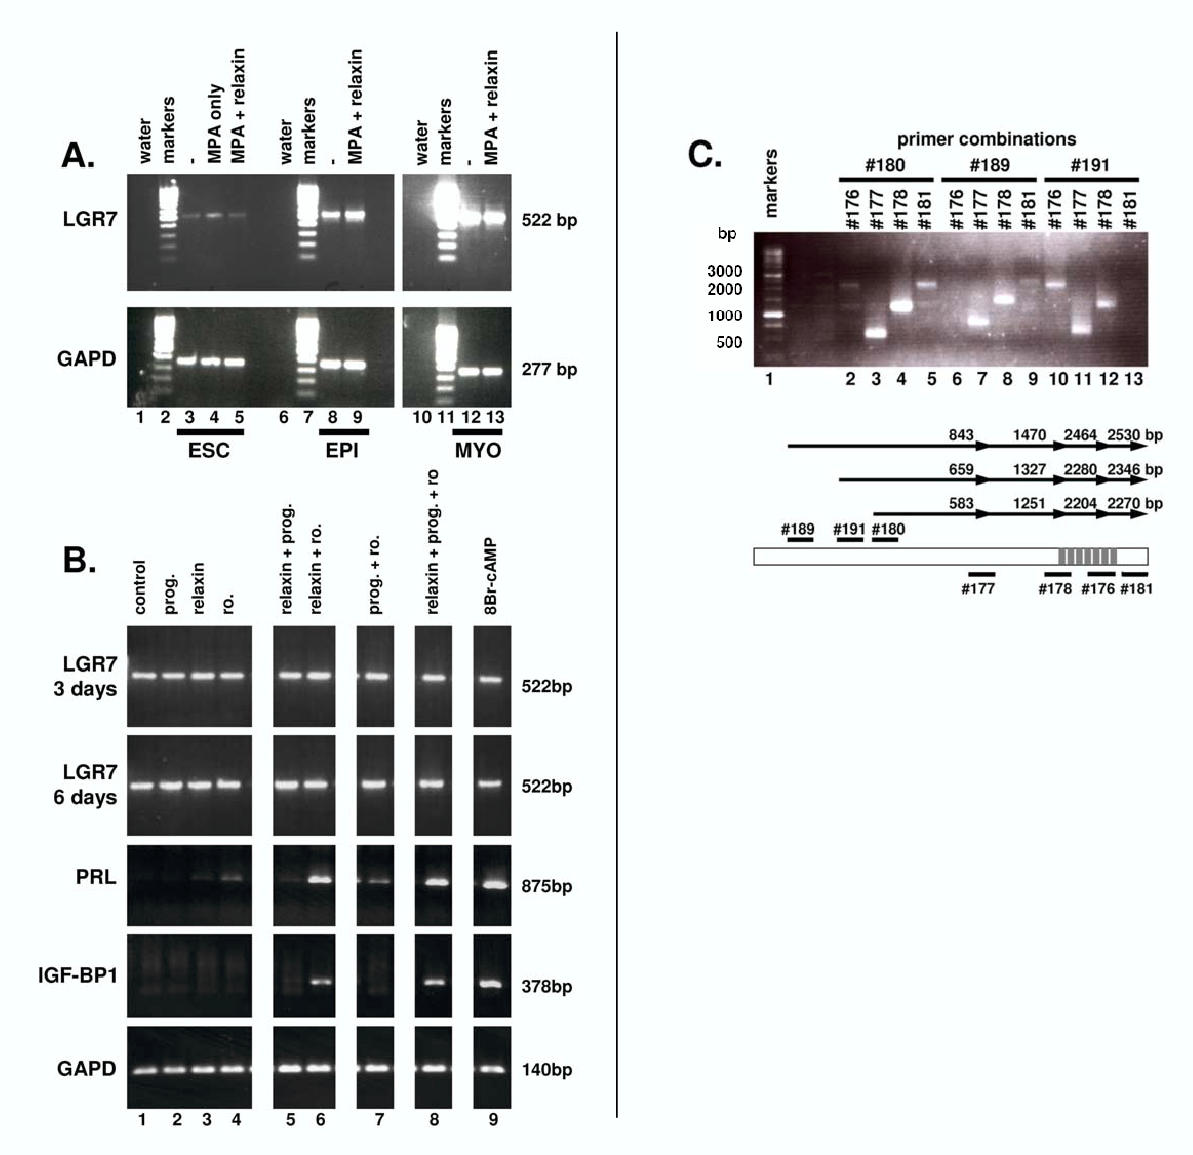 https://static-content.springer.com/image/art%3A10.1186%2F1477-7827-1-114/MediaObjects/12958_2003_Article_114_Fig4_HTML.jpg